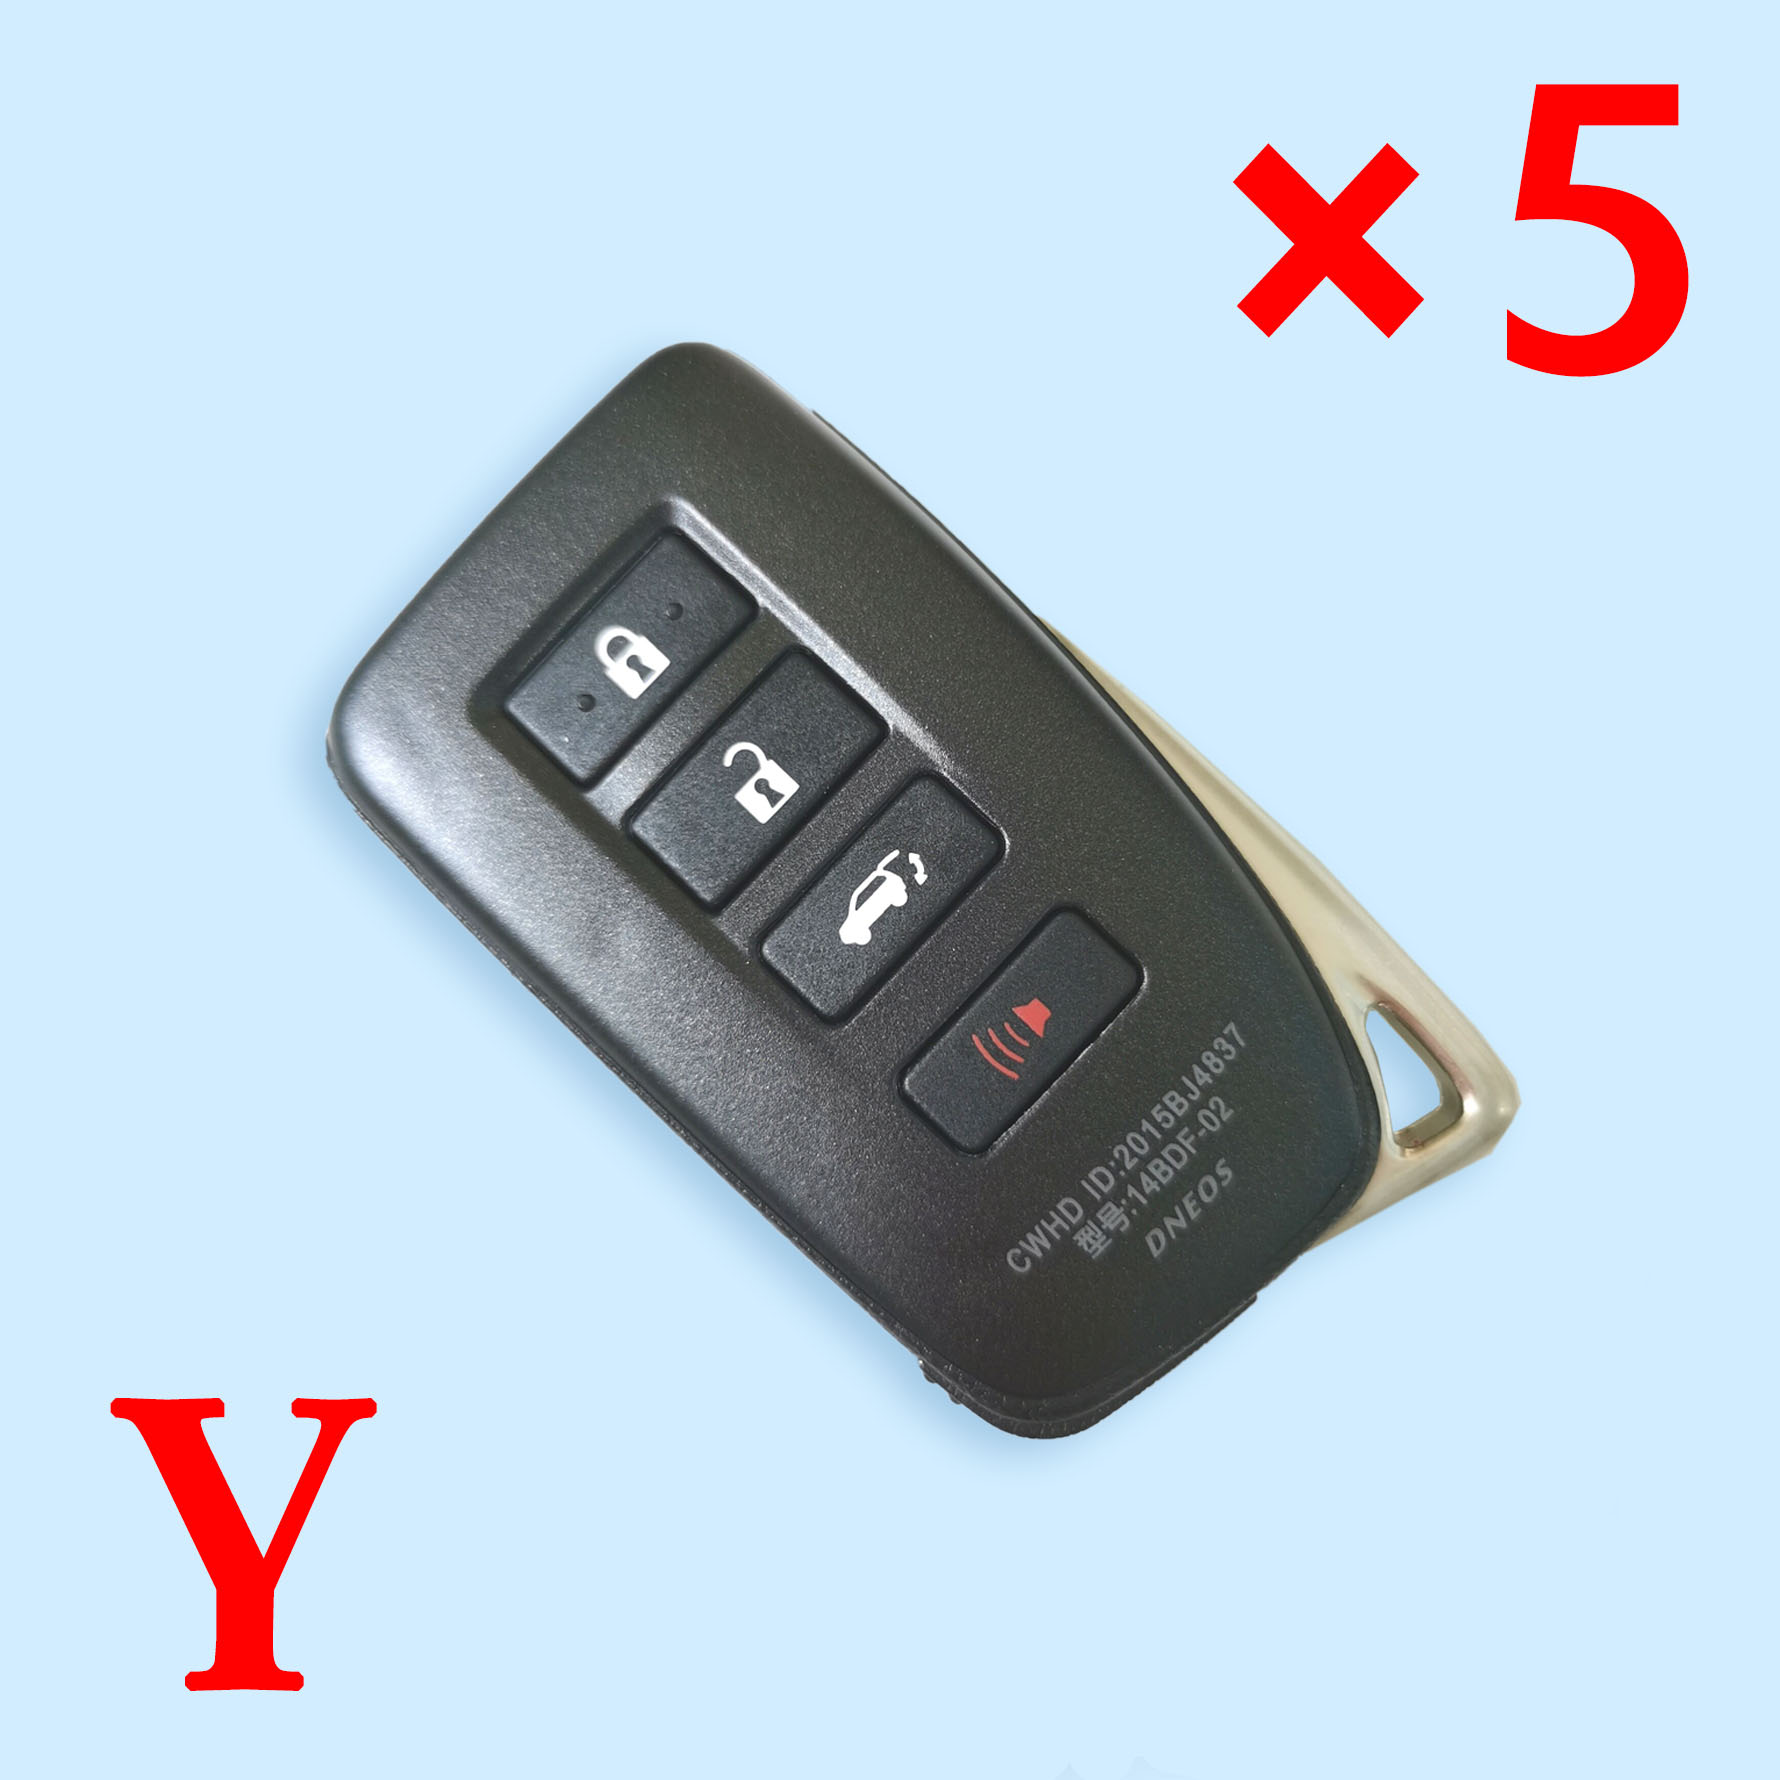 4 Buttons Smart Key Shell for Toyota - Suitable for VVDI Toyota PCB - Pack of 5